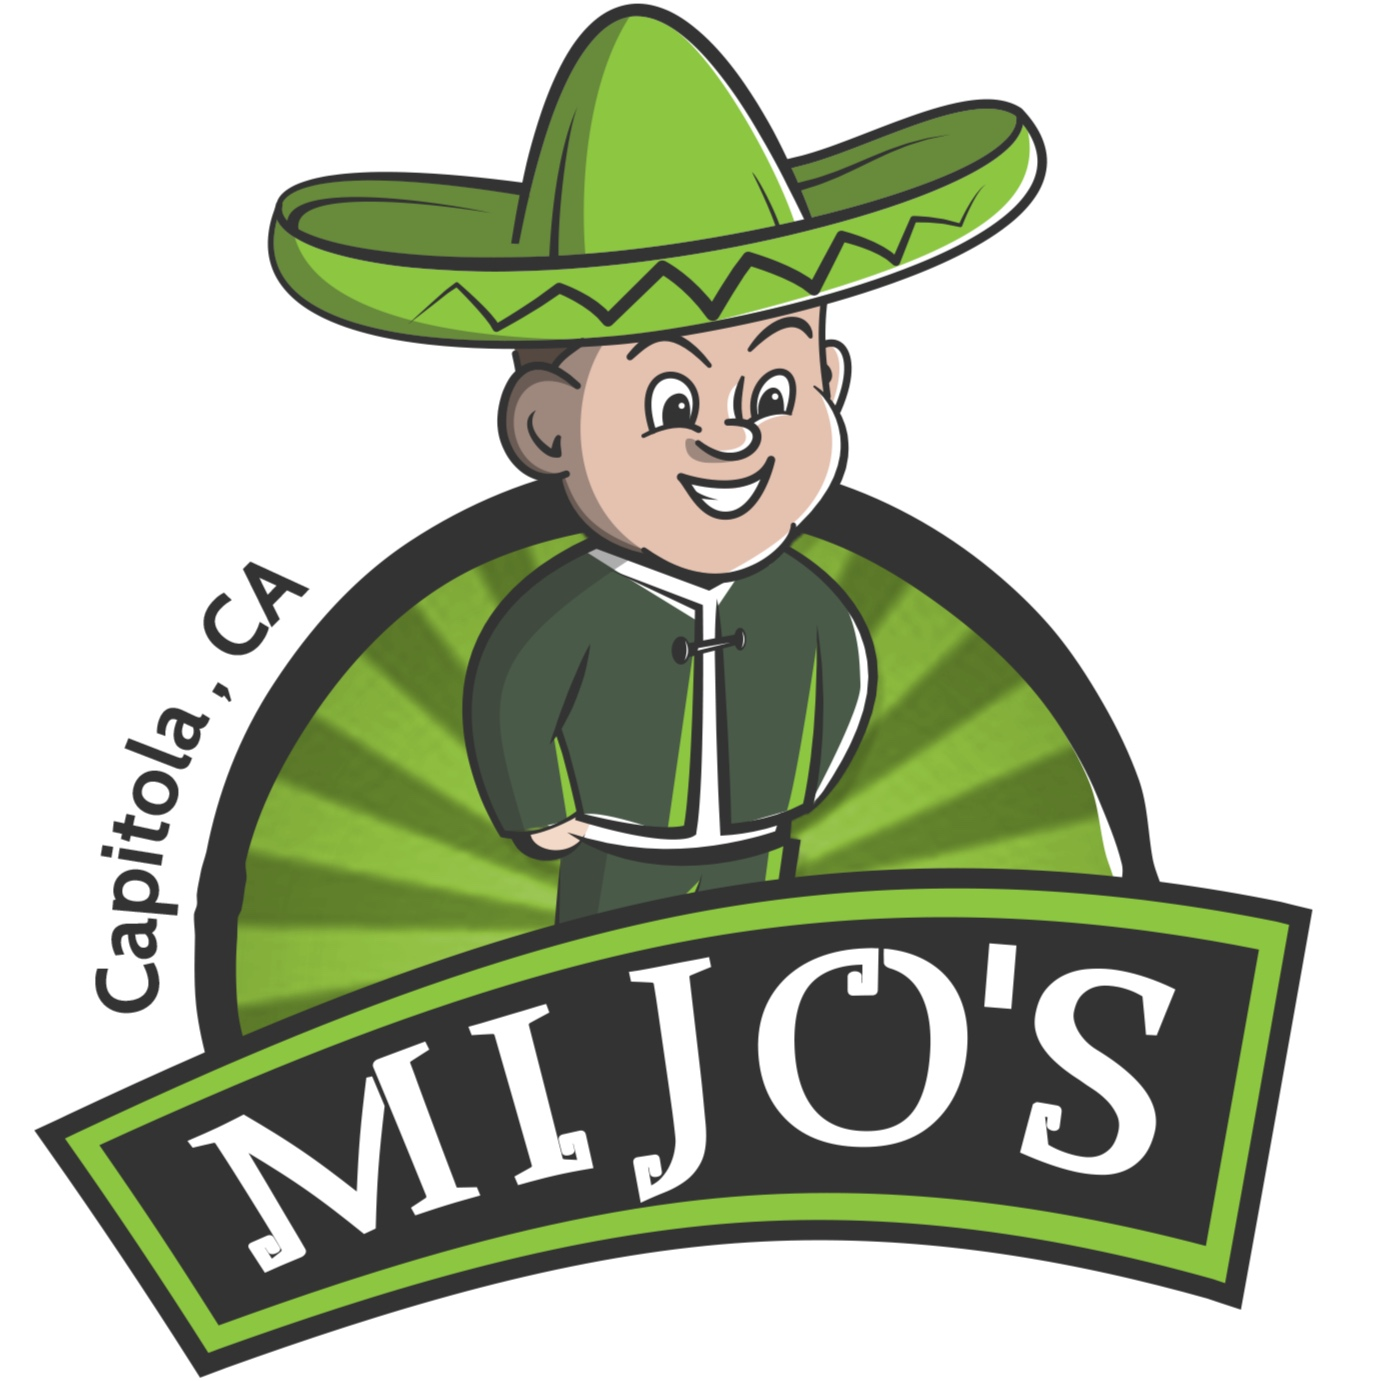 Mijo's Taqueria - Meal service(s): Lunch, Dinner